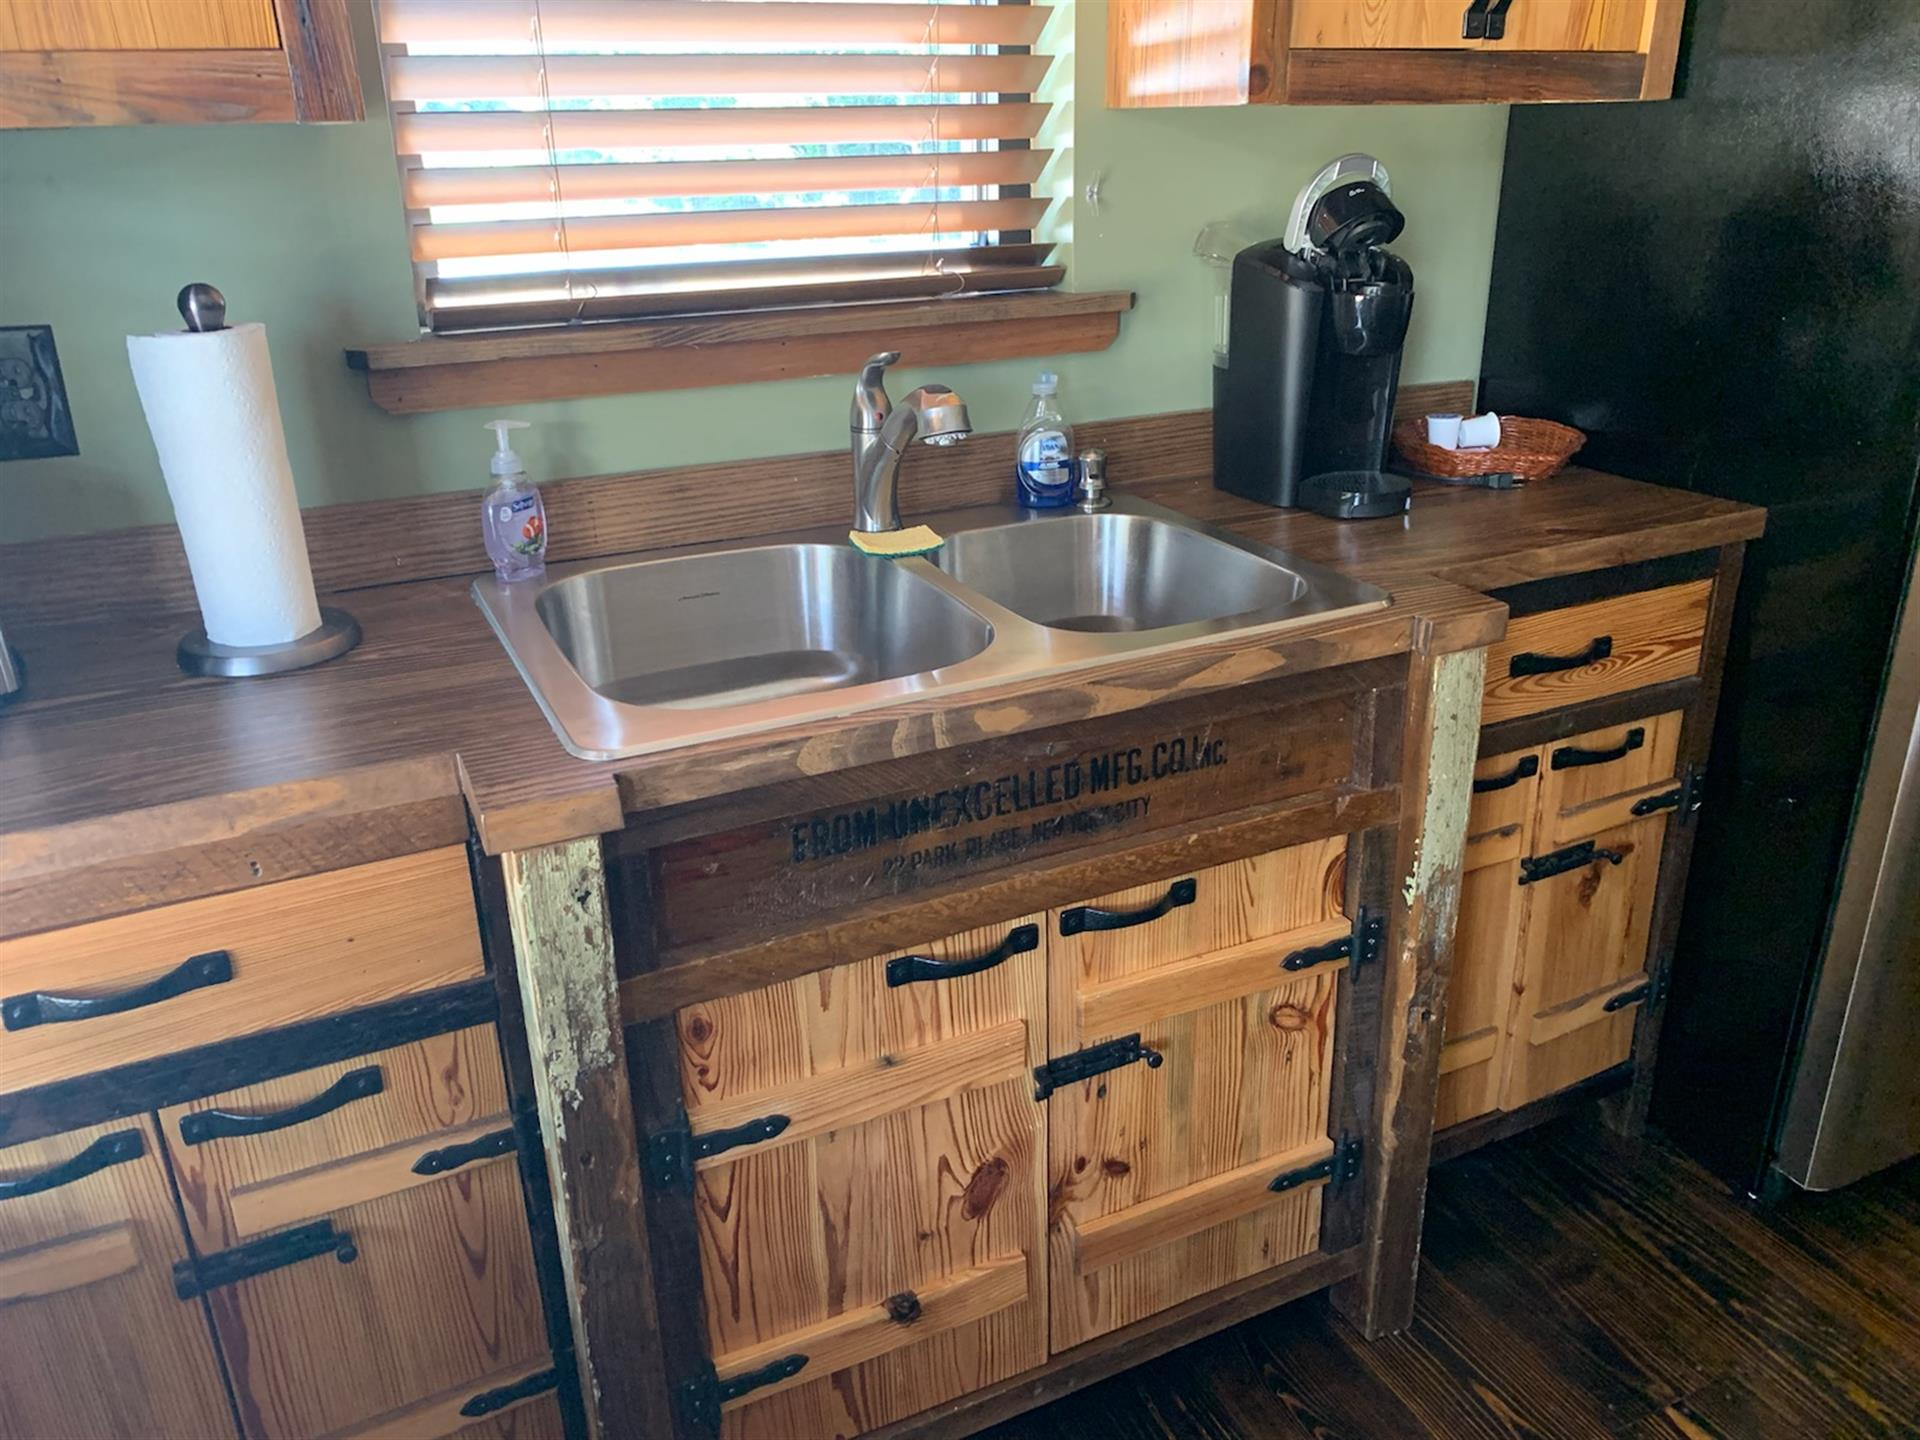 Wooden cabinets and drawers with one double bowl kitchen sink with window above, roll of paper towels to the left and coffee keurig to the right.